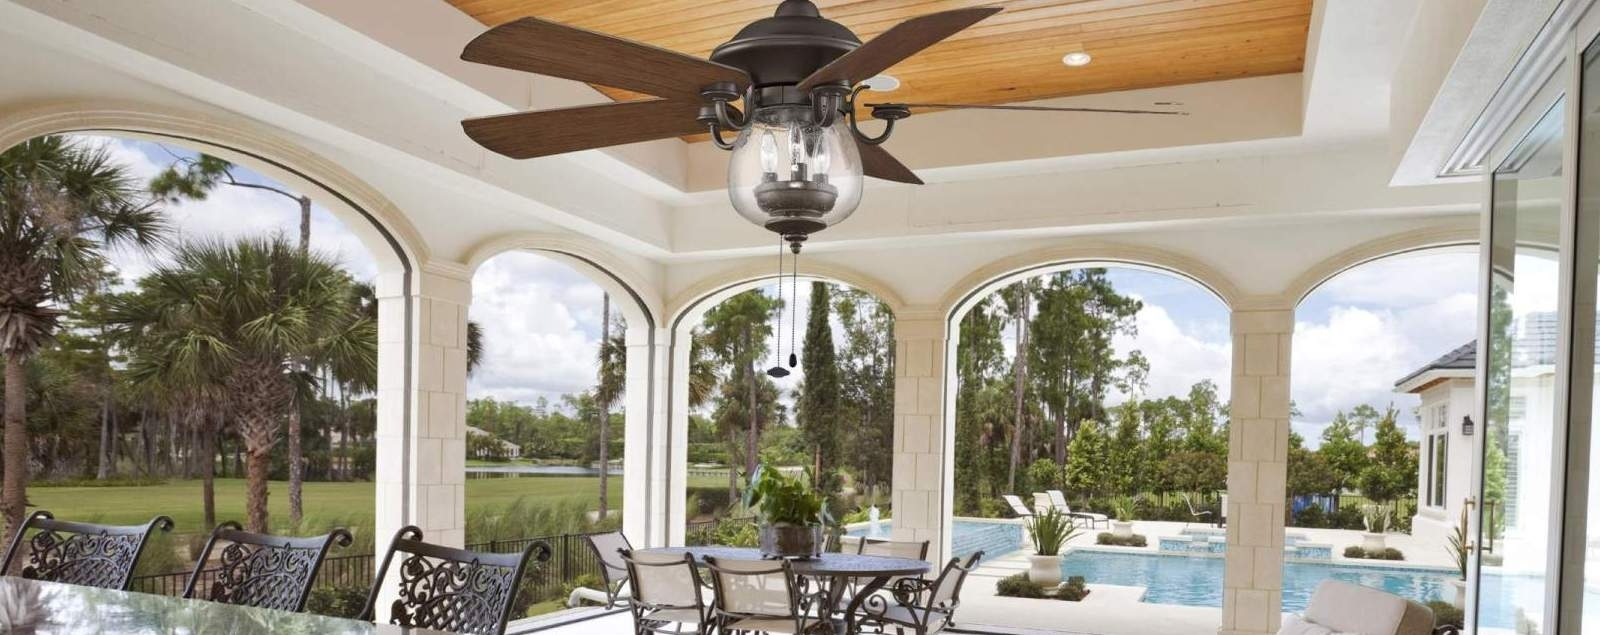 Outdoor Ceiling Fans For Wet Locations With Regard To Recent Outdoor Ceiling Fans – Shop Wet, Dry, And Damp Rated Outdoor Fans (Gallery 2 of 20)